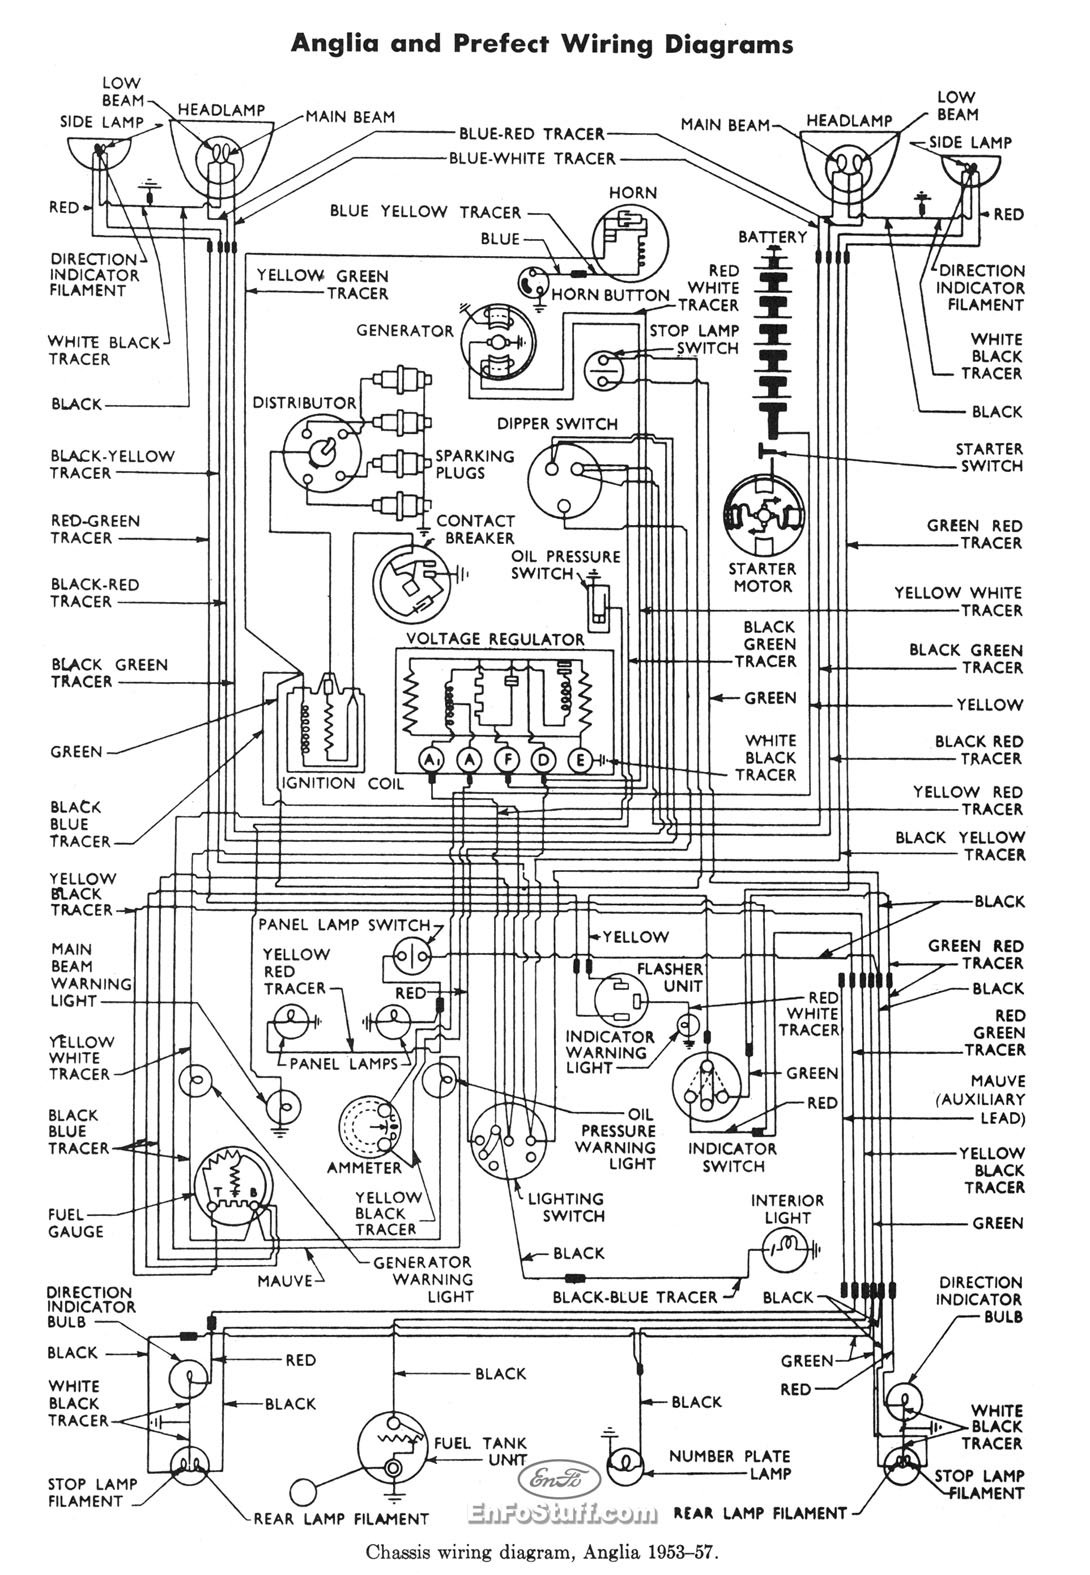 wiring diagram for ford anglia 1953 57 rh enfostuff com 1995 ford f800 wiring diagram 1989 ford f800 wiring diagram